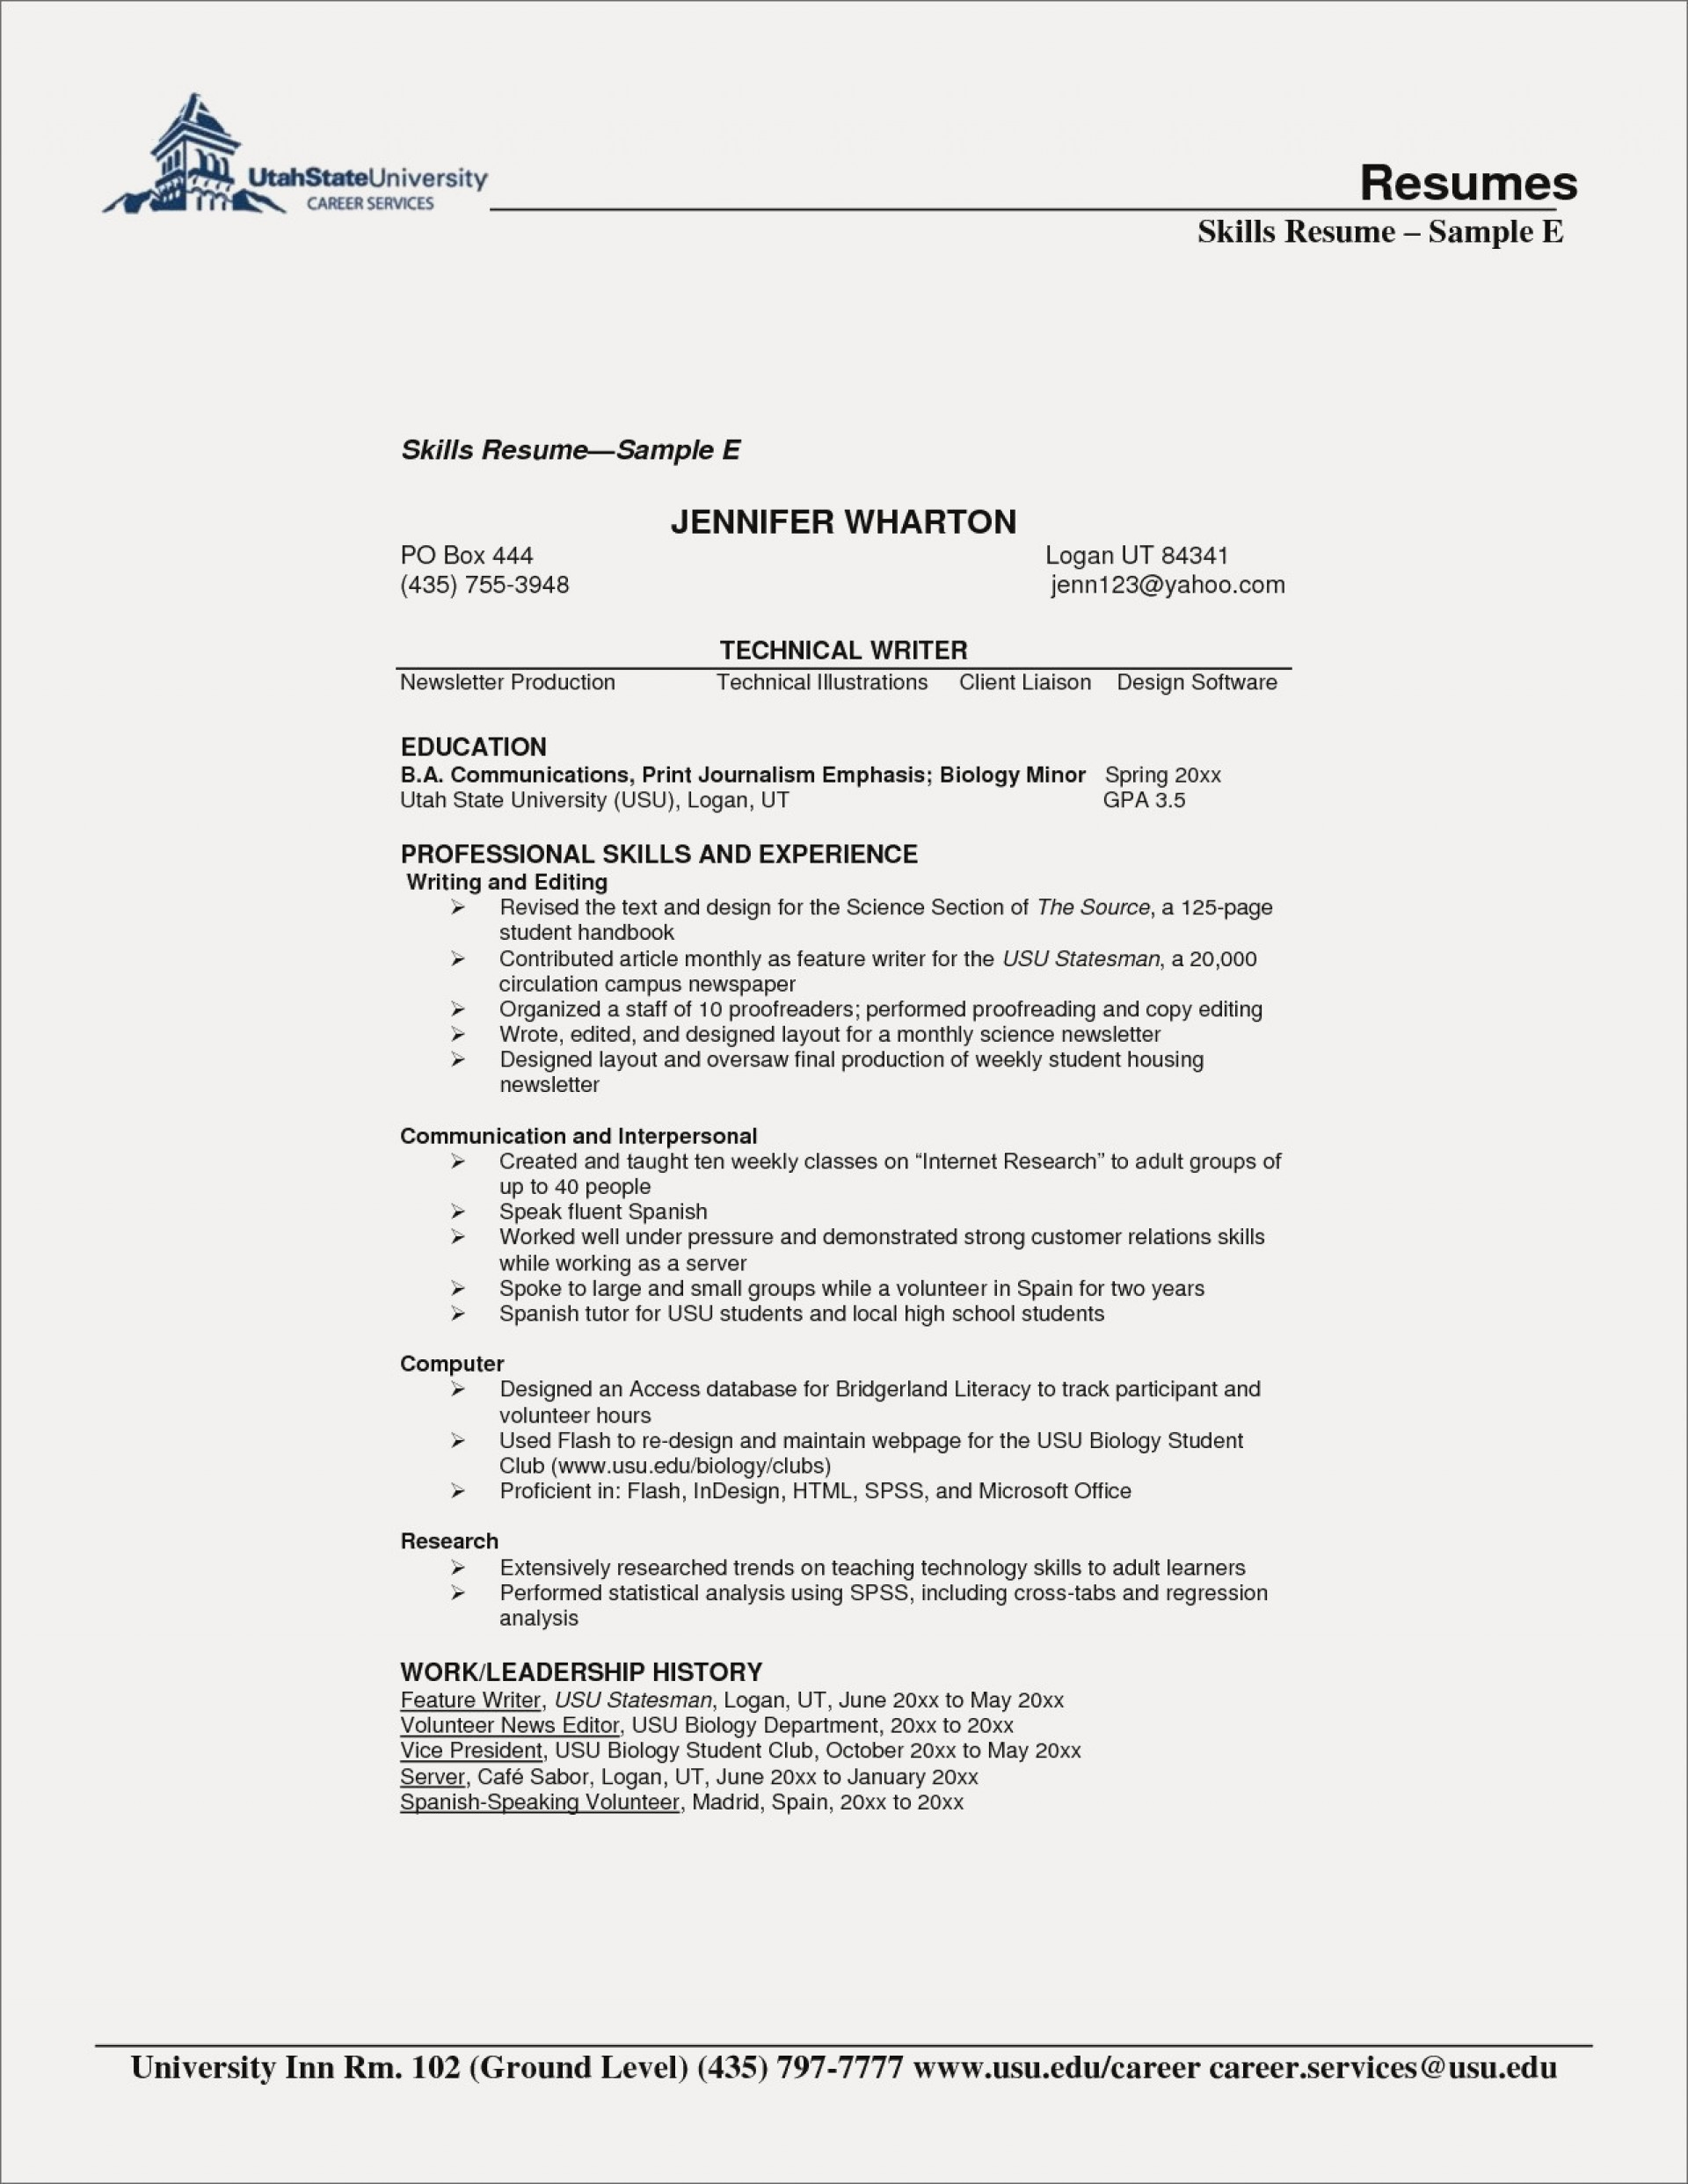 014 Biology Research Paper Lovely Resume Skills Section Example Save Puter Unique Of Remarkable Sample Format 1920